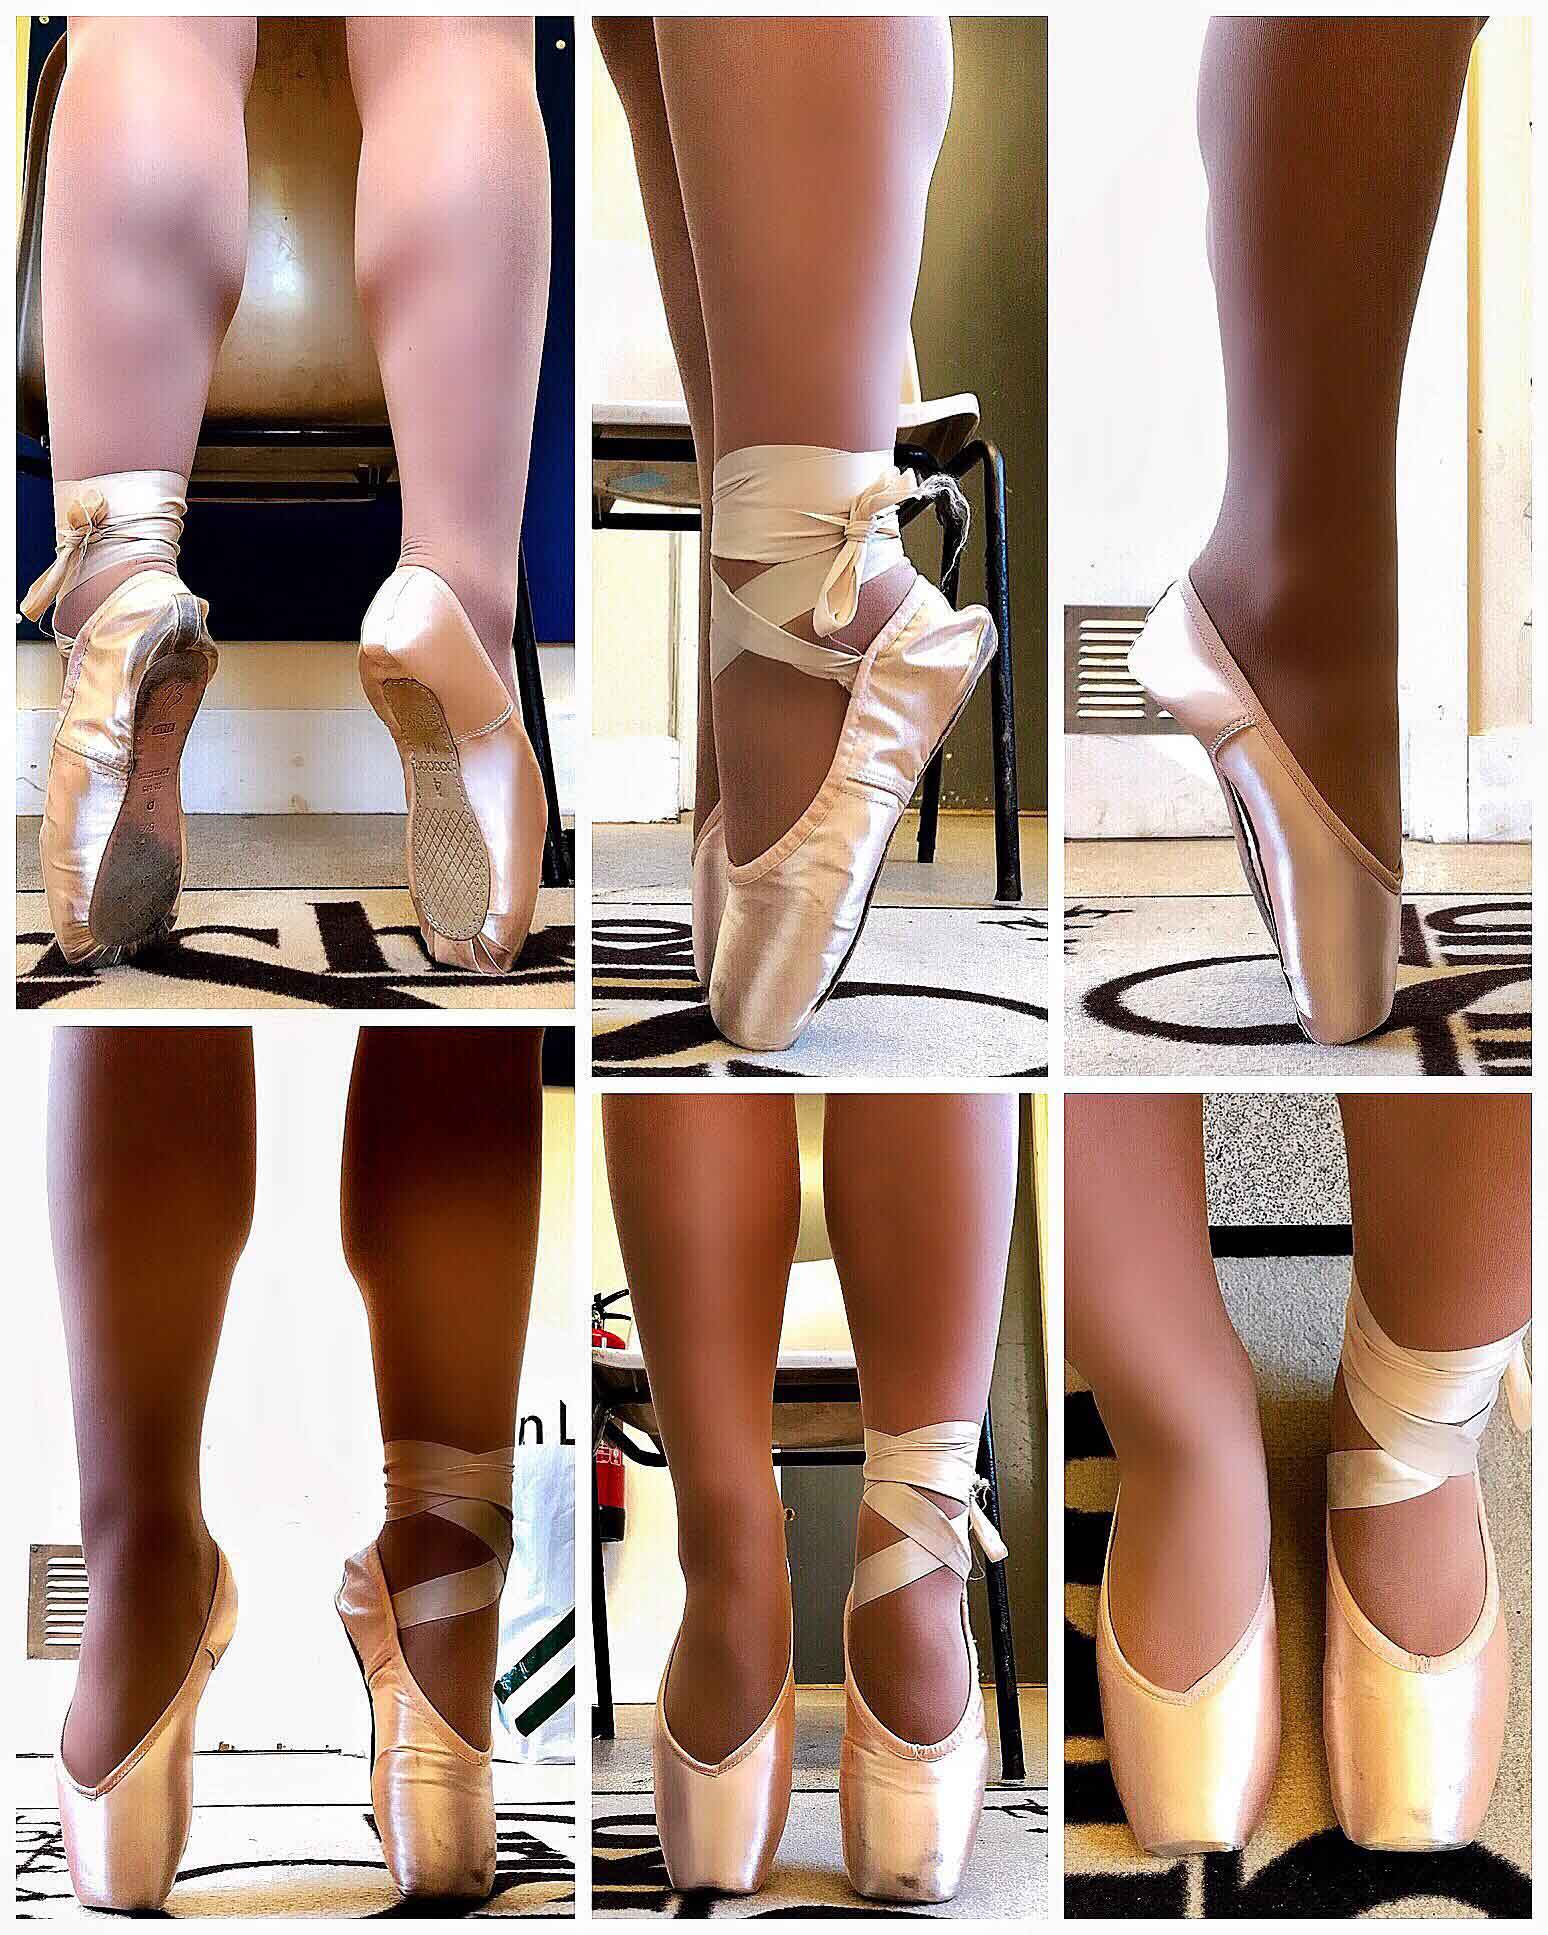 Pointe shoe fitting photos straight to the pointe for Where to buy photography